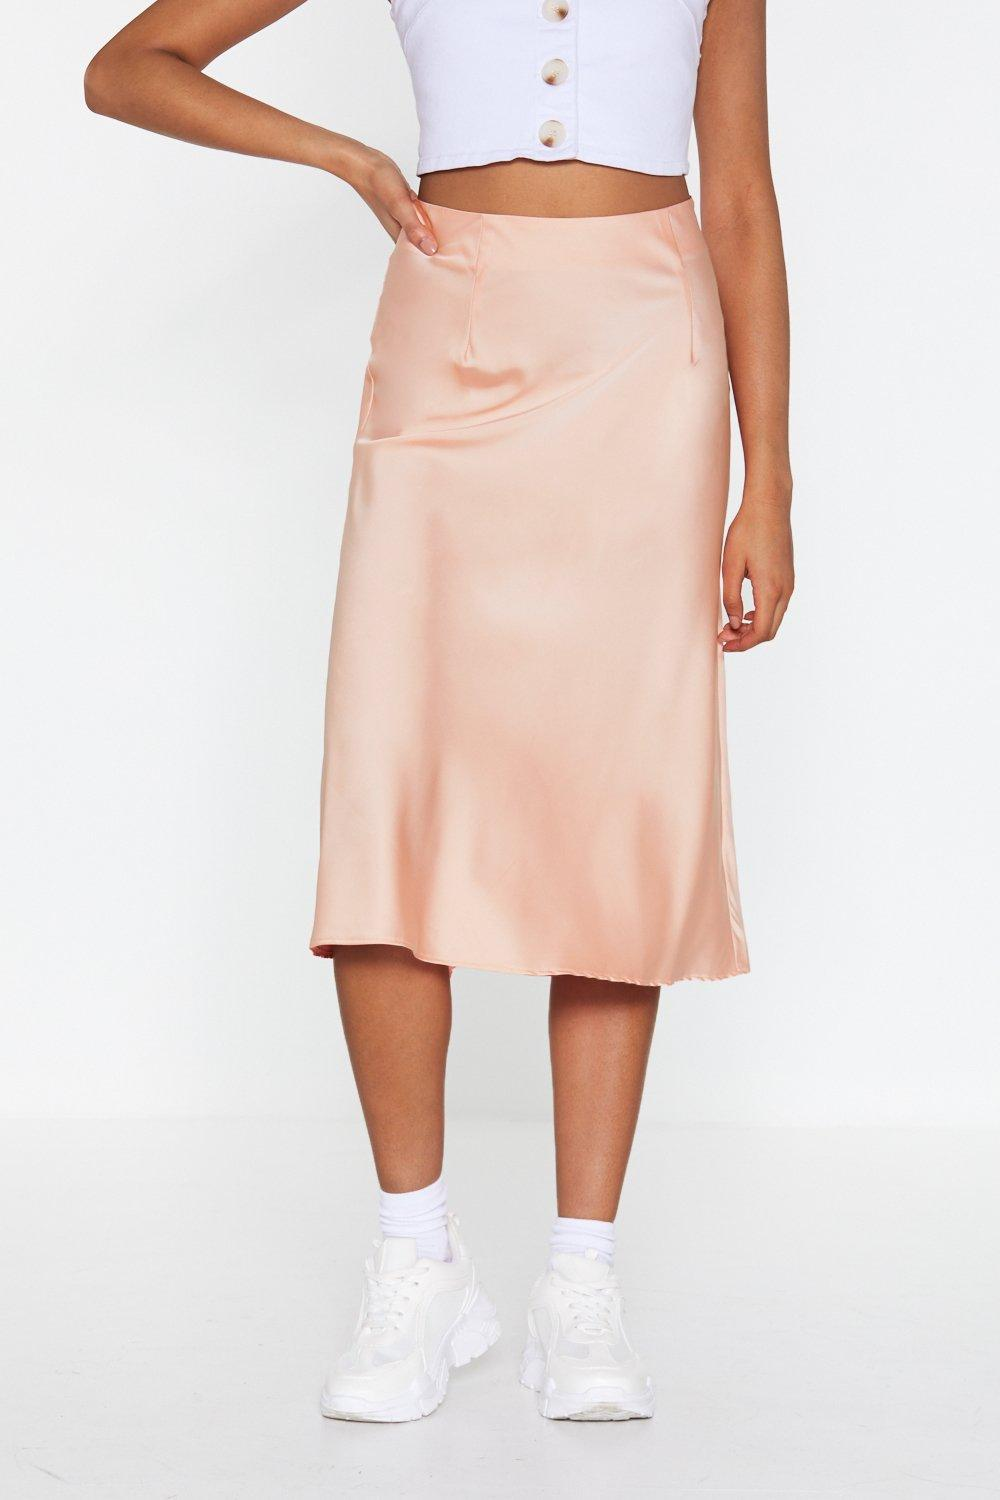 38139b25a Just My Type Satin Midi Skirt | Shop Clothes at Nasty Gal!